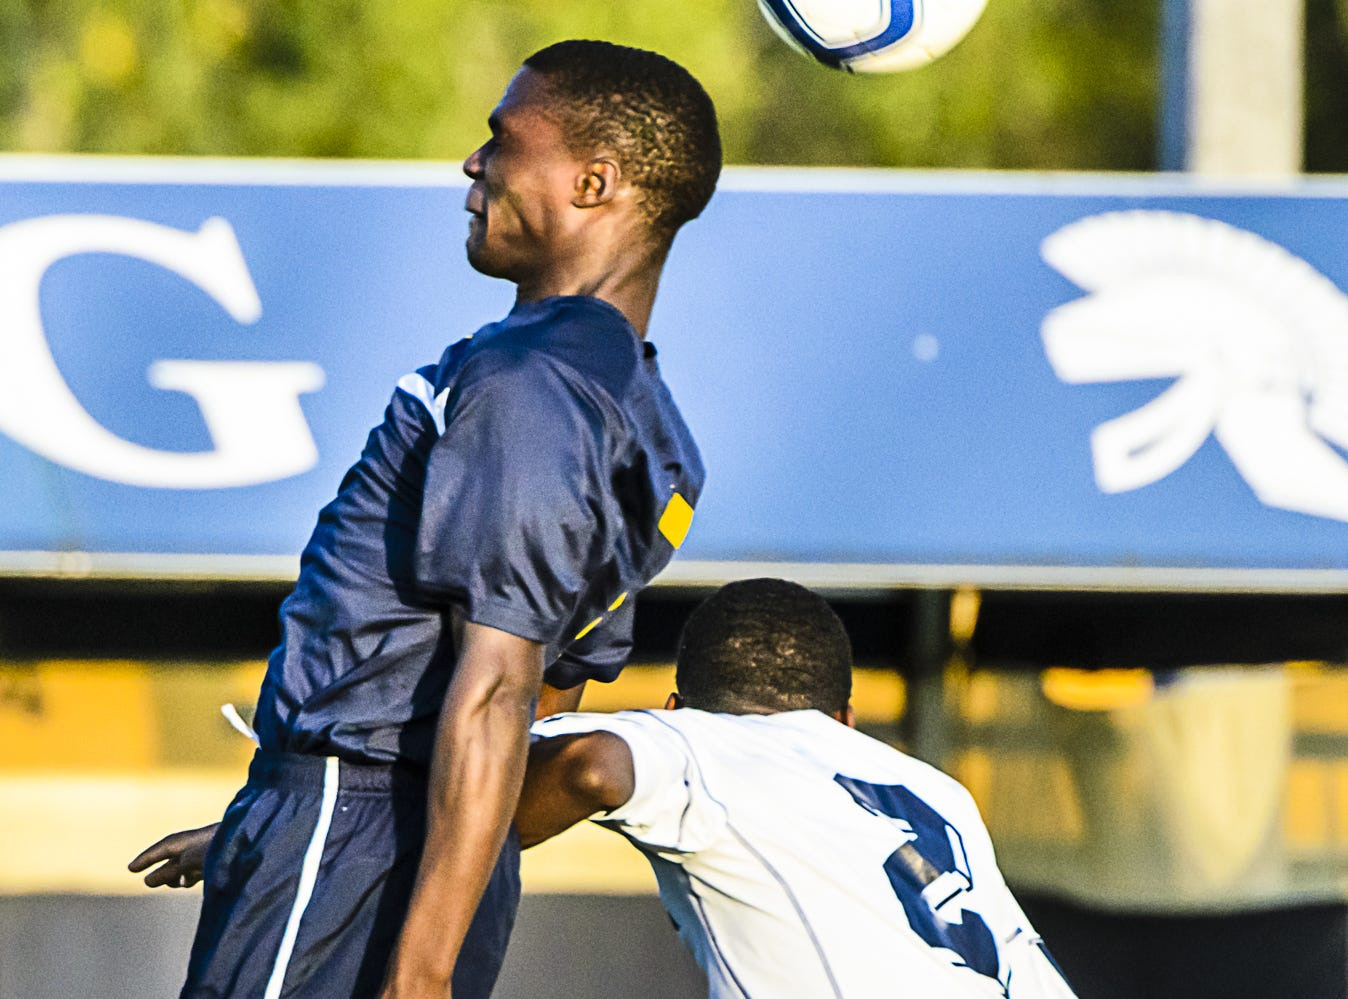 Yusef Muya (left) heads the ball away from Dejuan Jones of East Lansing during their game Tuesday September 11, 2012 in East Lansing.